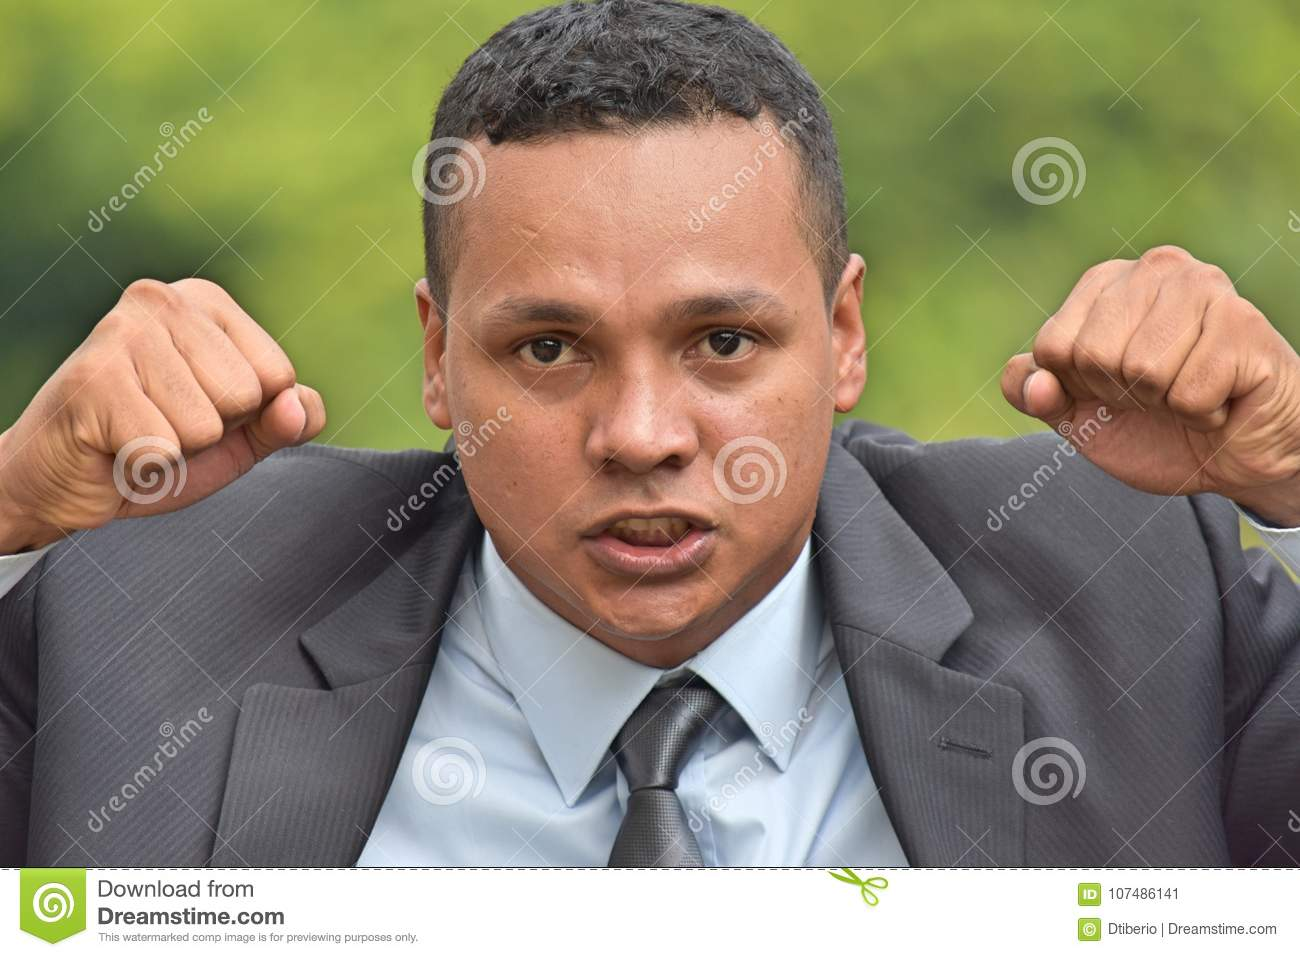 Angry Adult Business Executive Wearing Suit